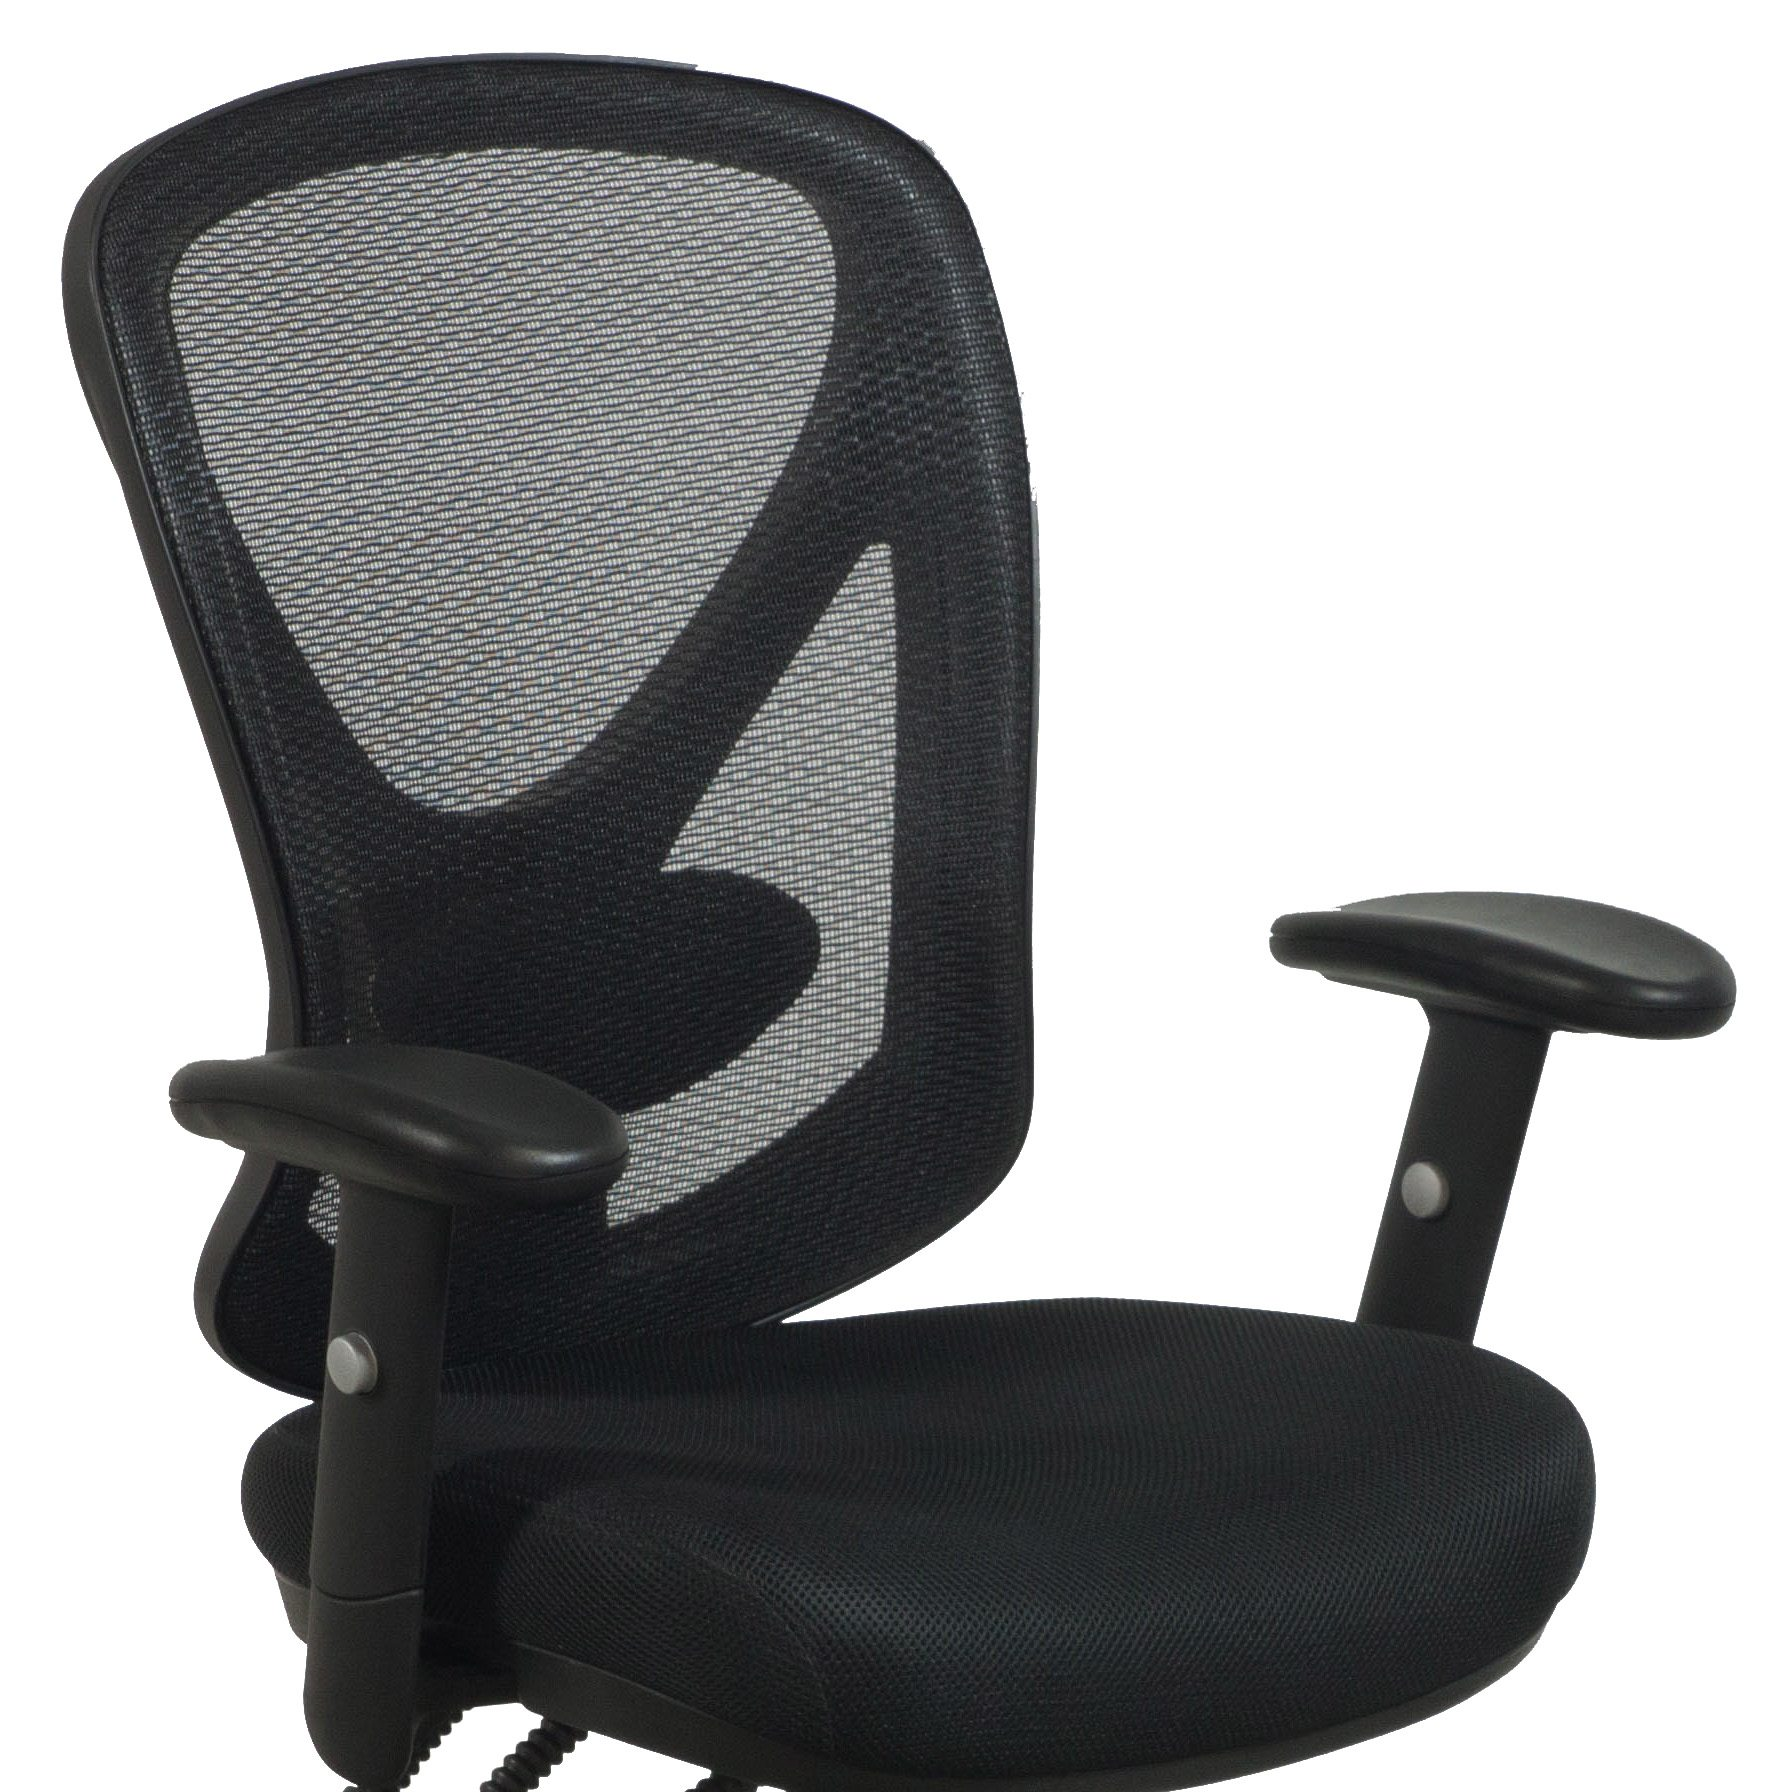 staples mesh chair